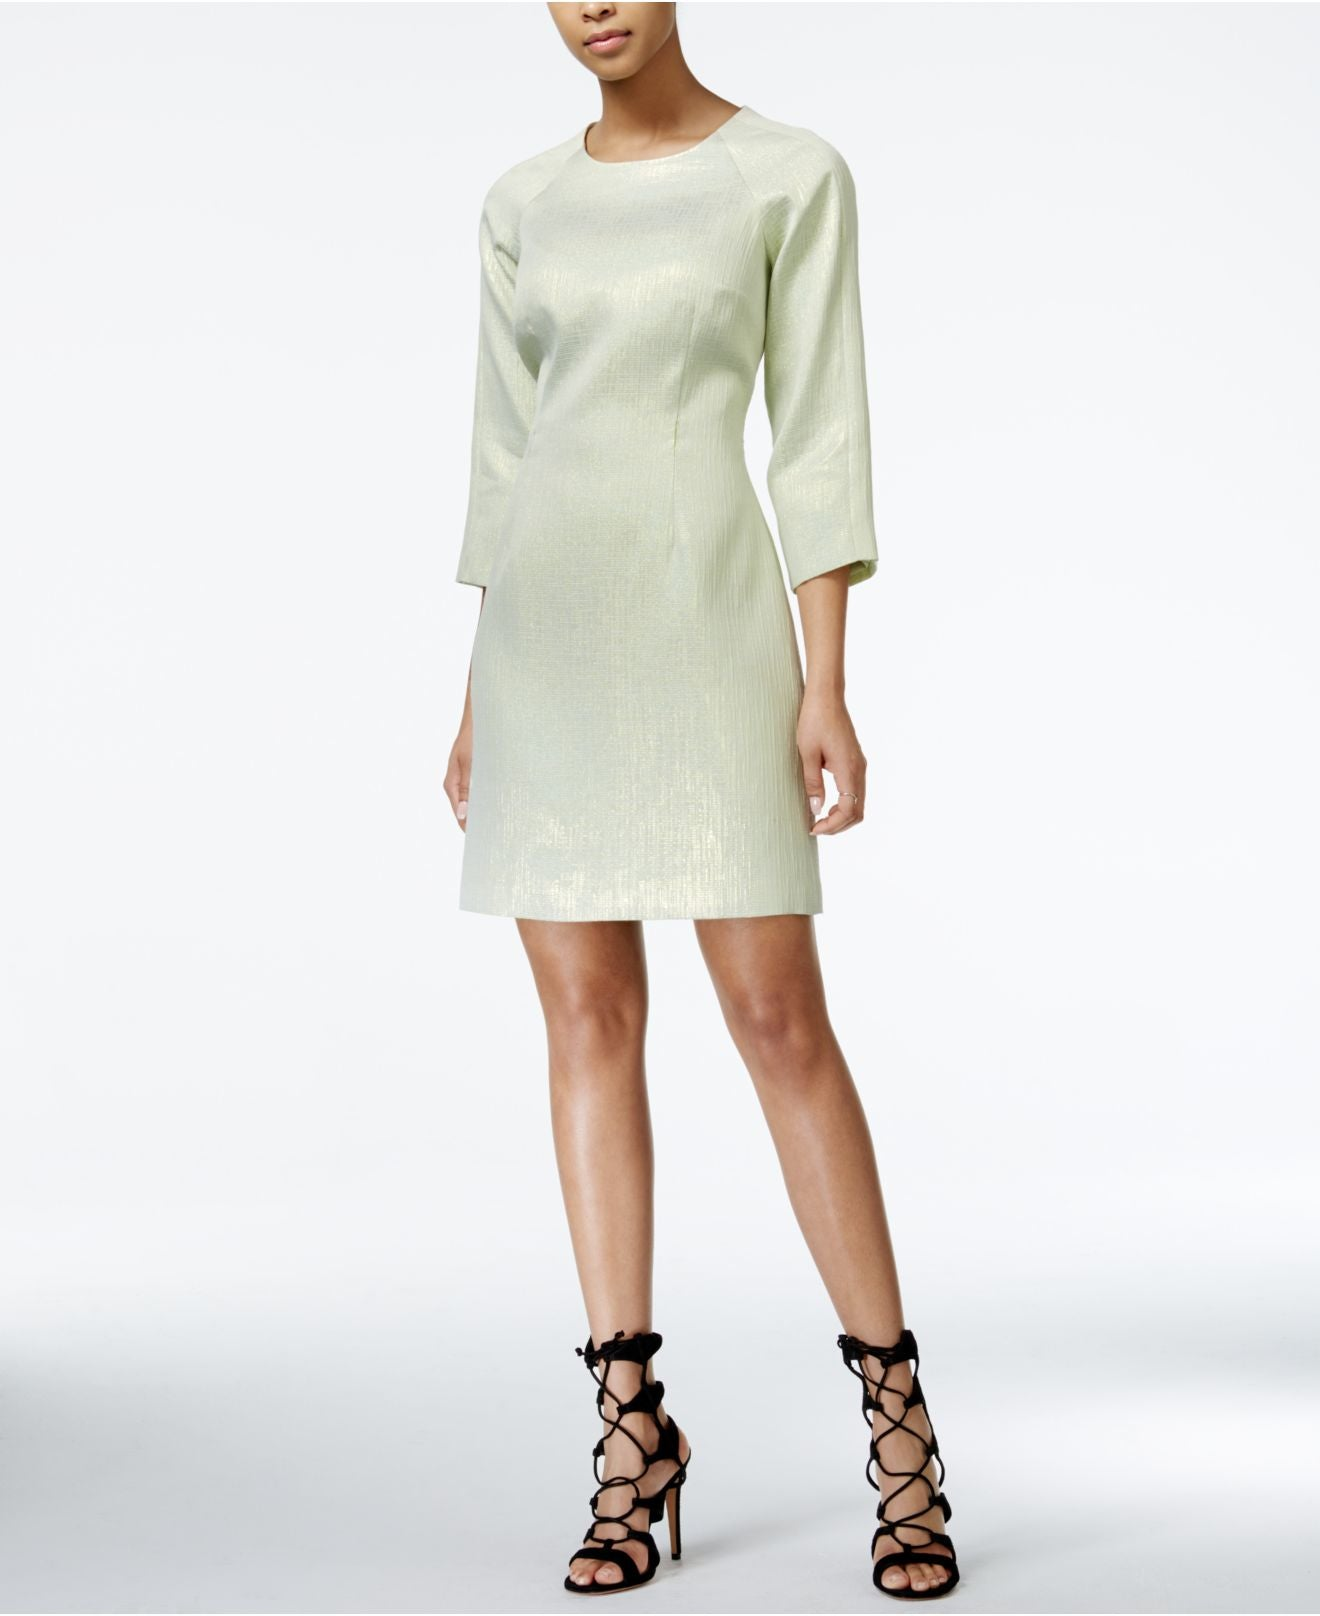 Rachel Roy Metallic Mint Sheath Dress